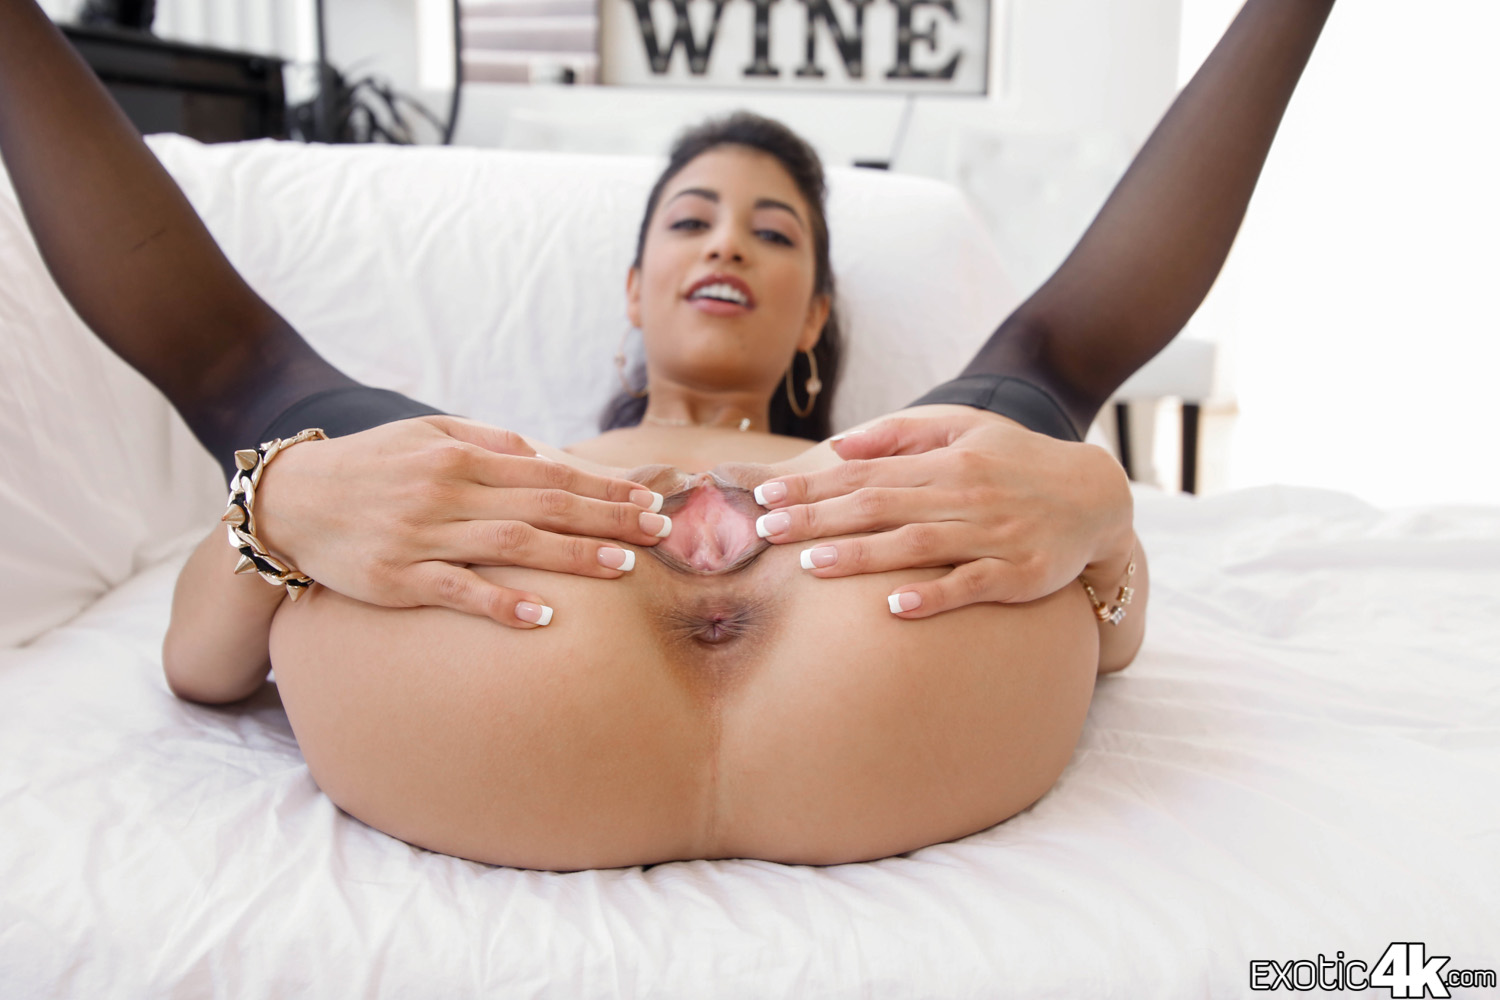 4k exotic4k selena santana bounces her ass on a hard cock 6